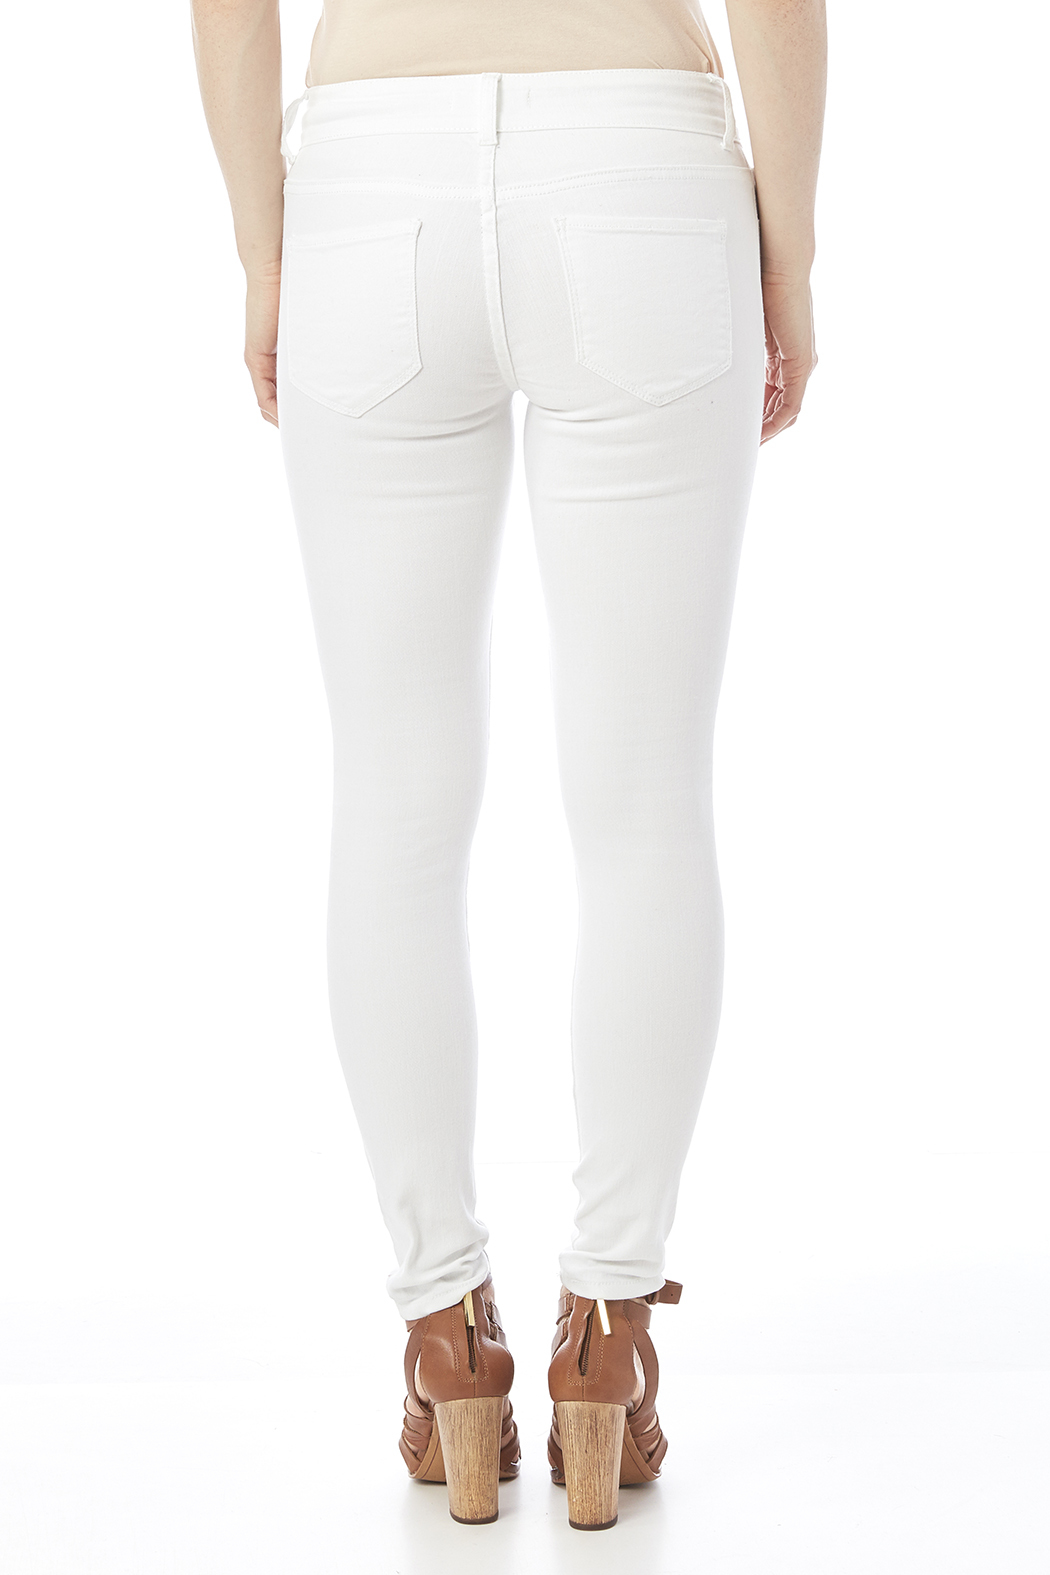 Cello White Distressed Jeans - Back Cropped Image